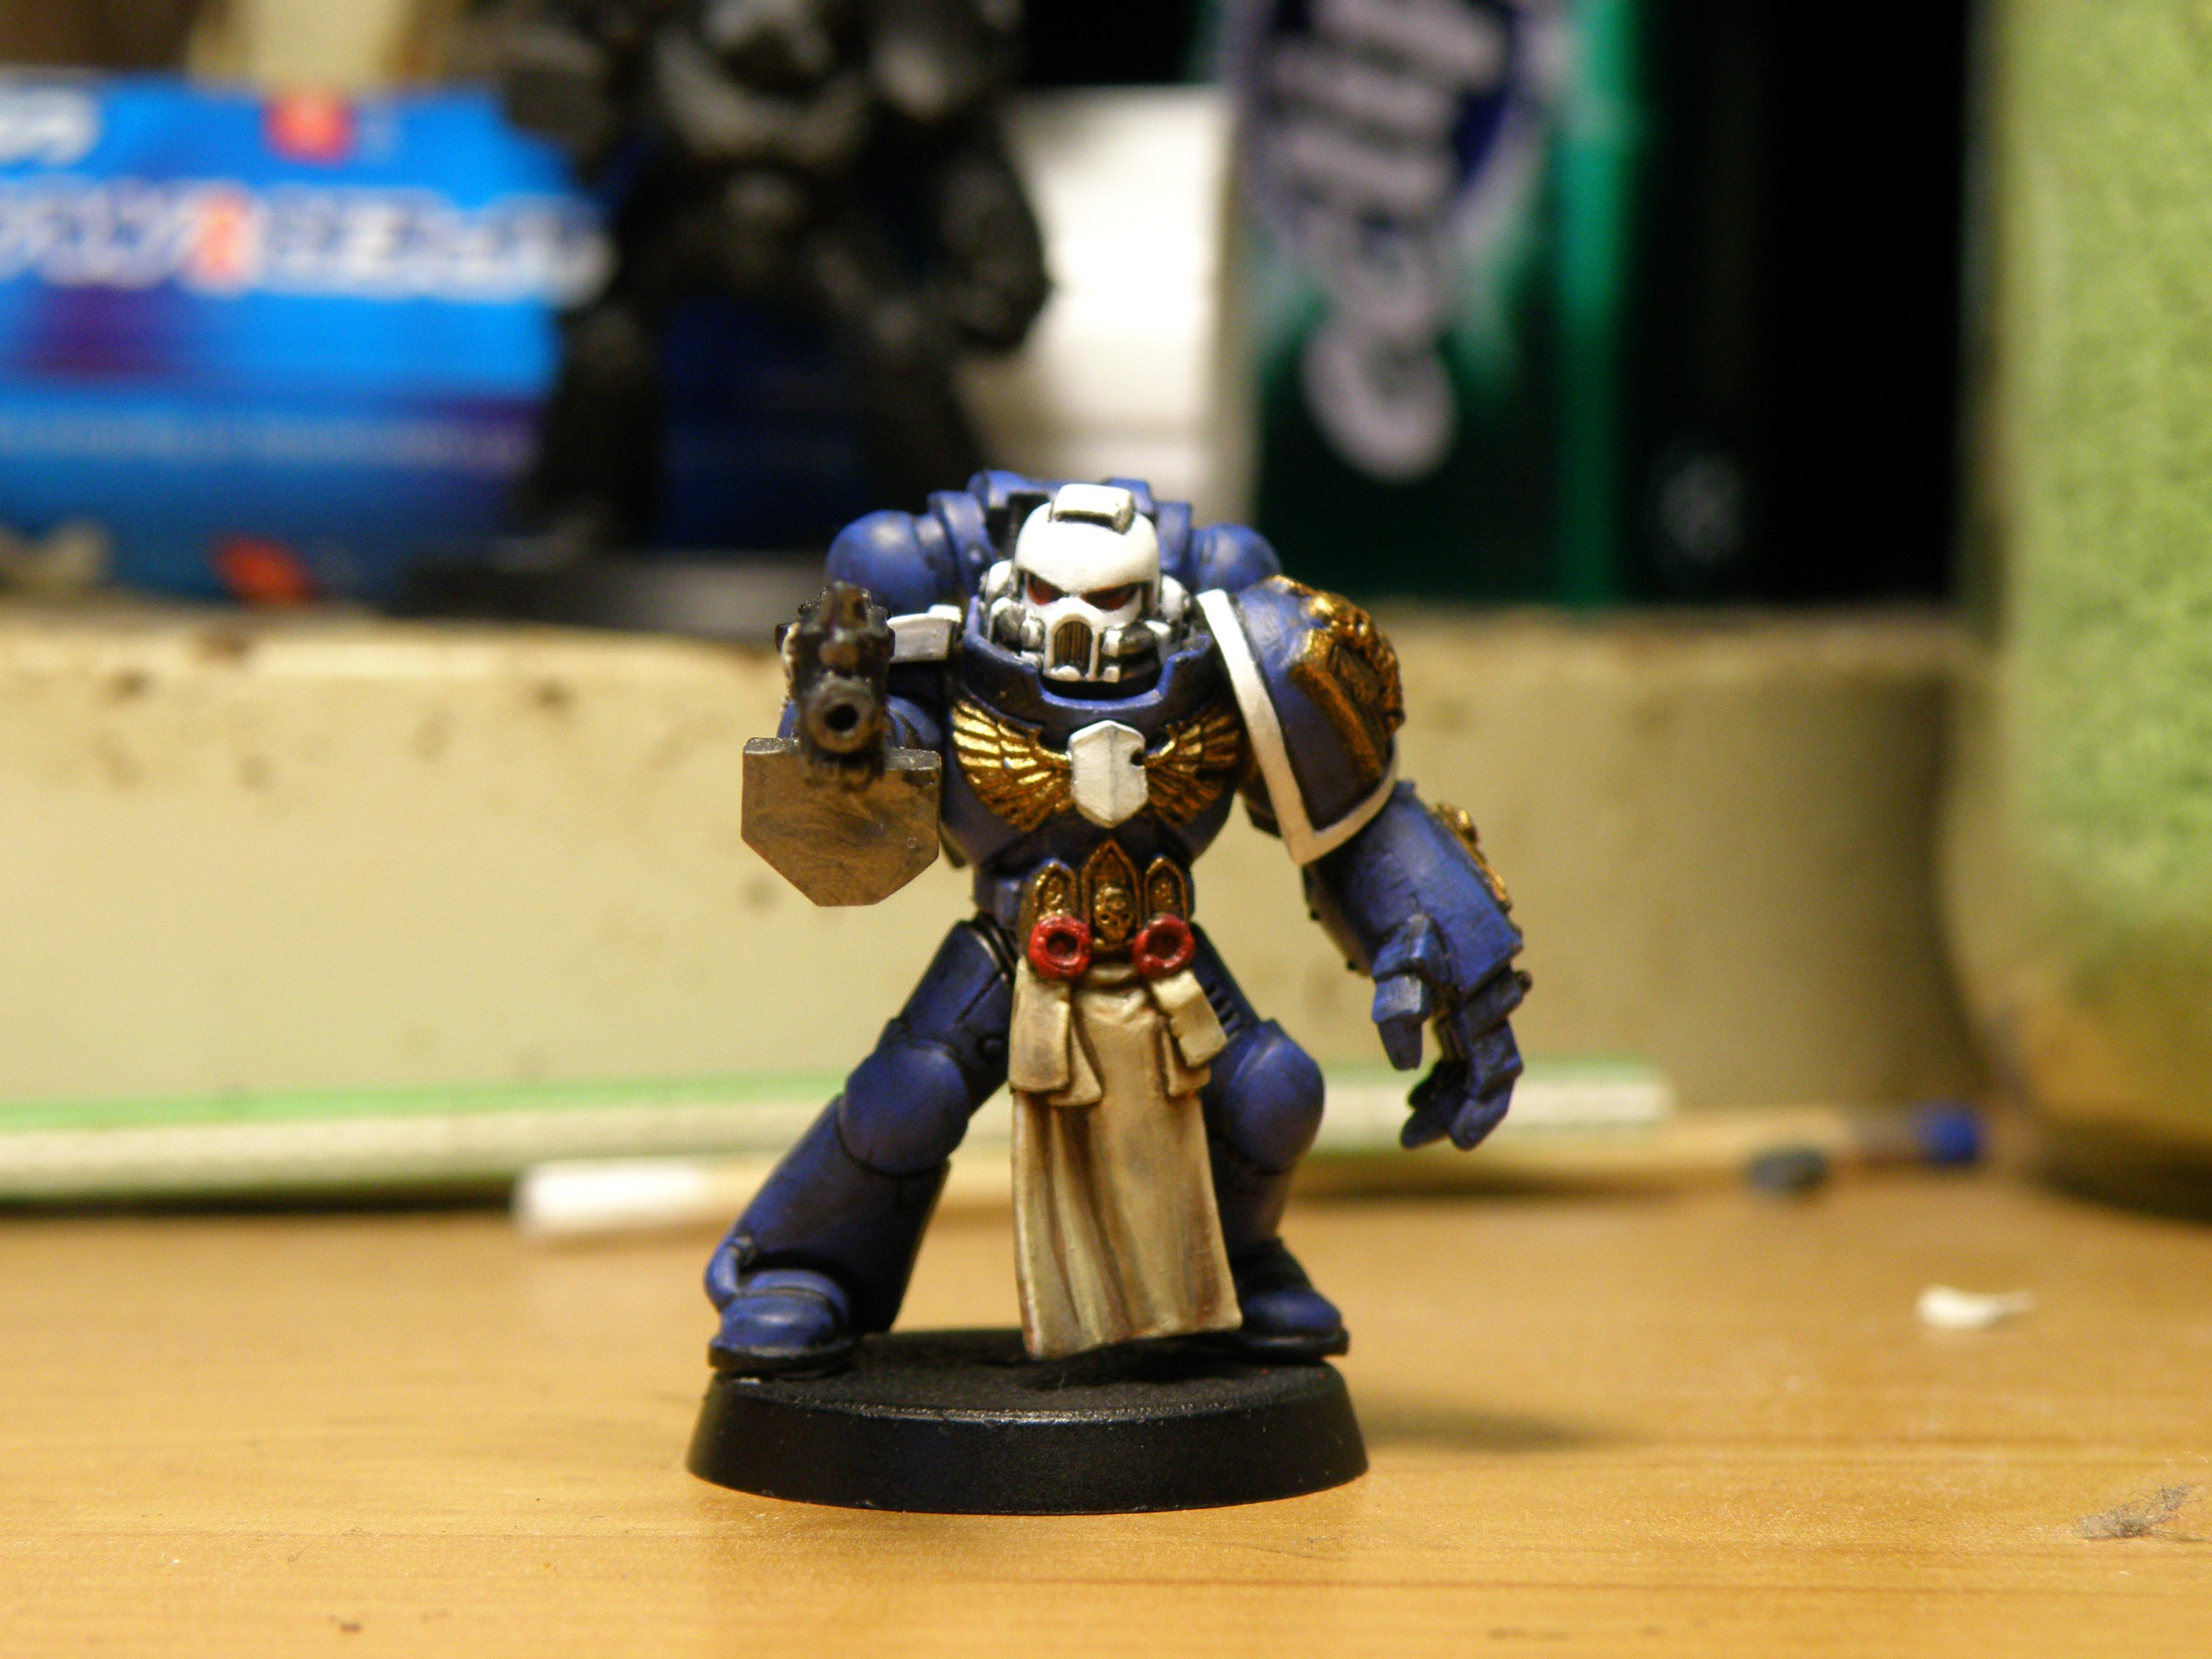 1st, 1st Company, Blue, Conversion, Cool, Fist, Power, Power Fist, Space Marines, Sternguard, Tabard, Ultramarines, White